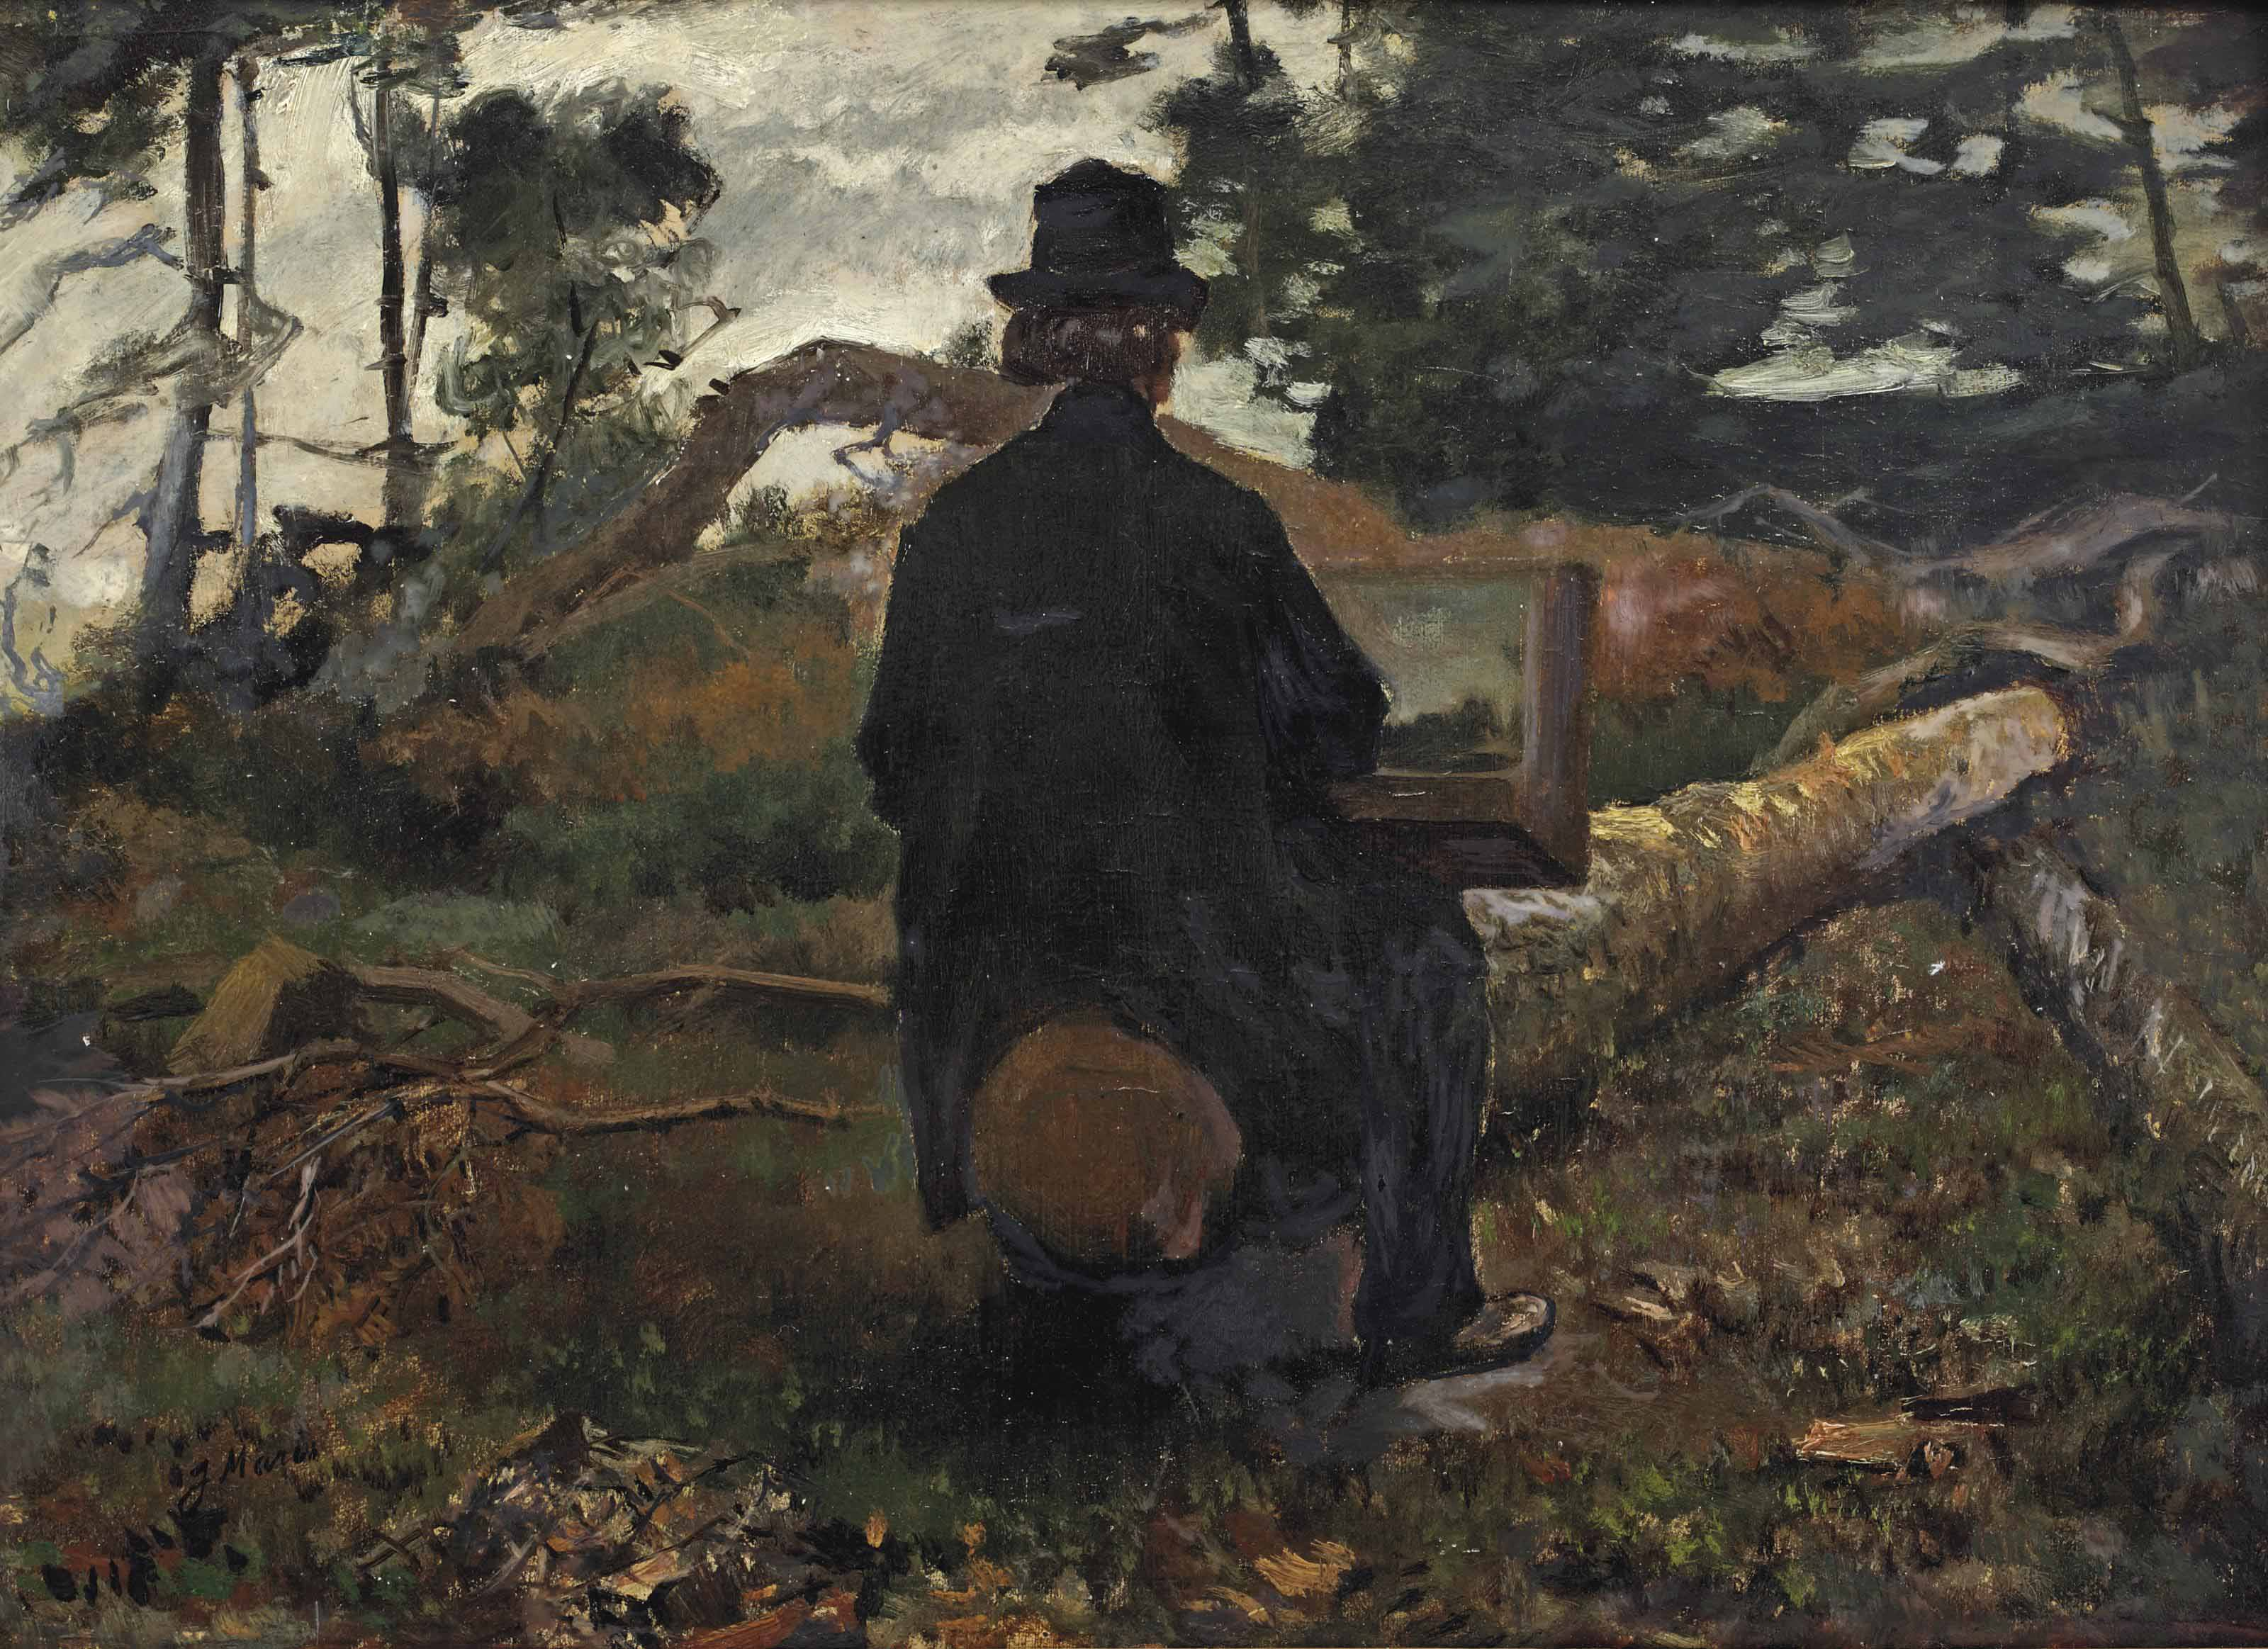 The painter Frederik Hendrik Kaemmerer at work in Oosterbeek